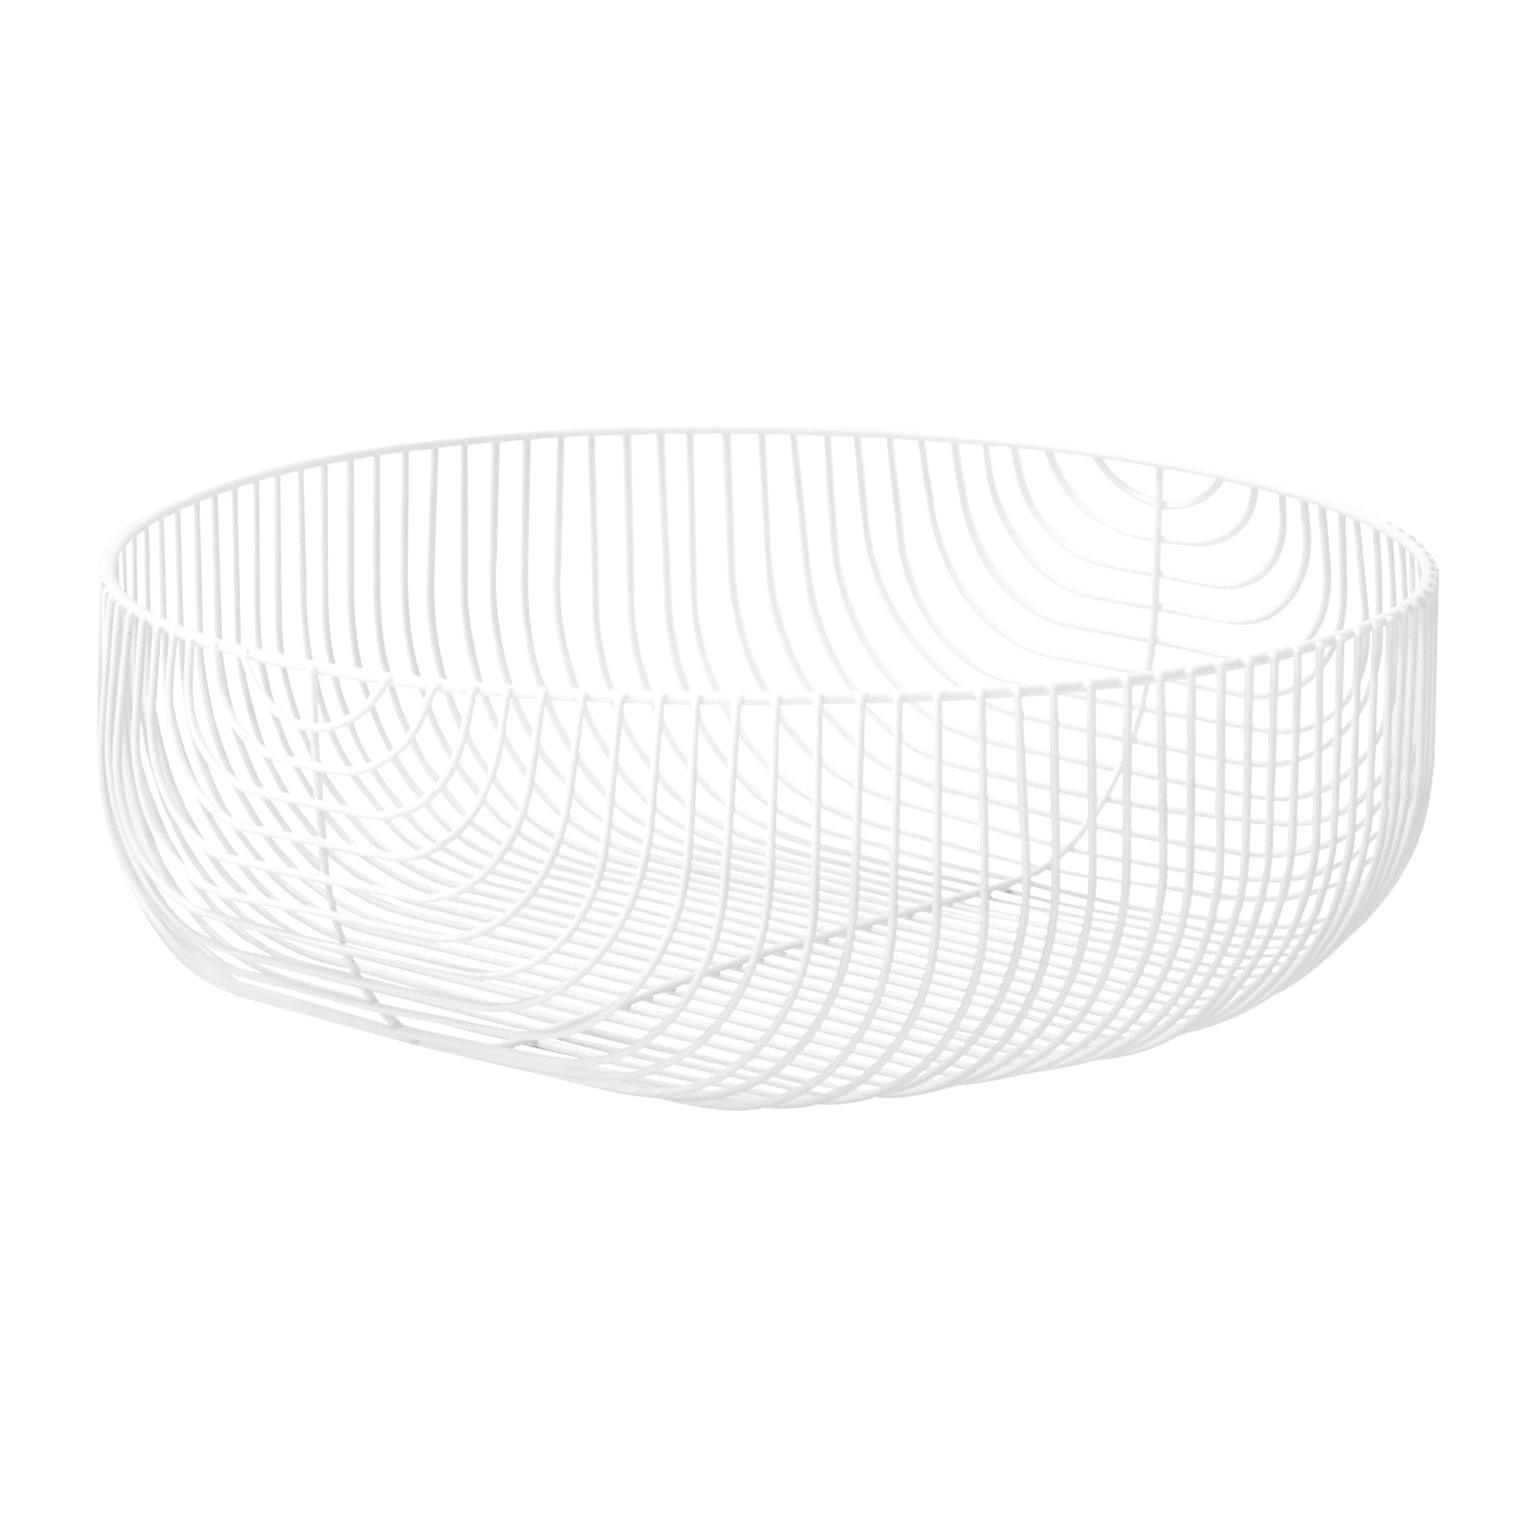 Large Sized Basket, Wire Design by Bend Goods, White